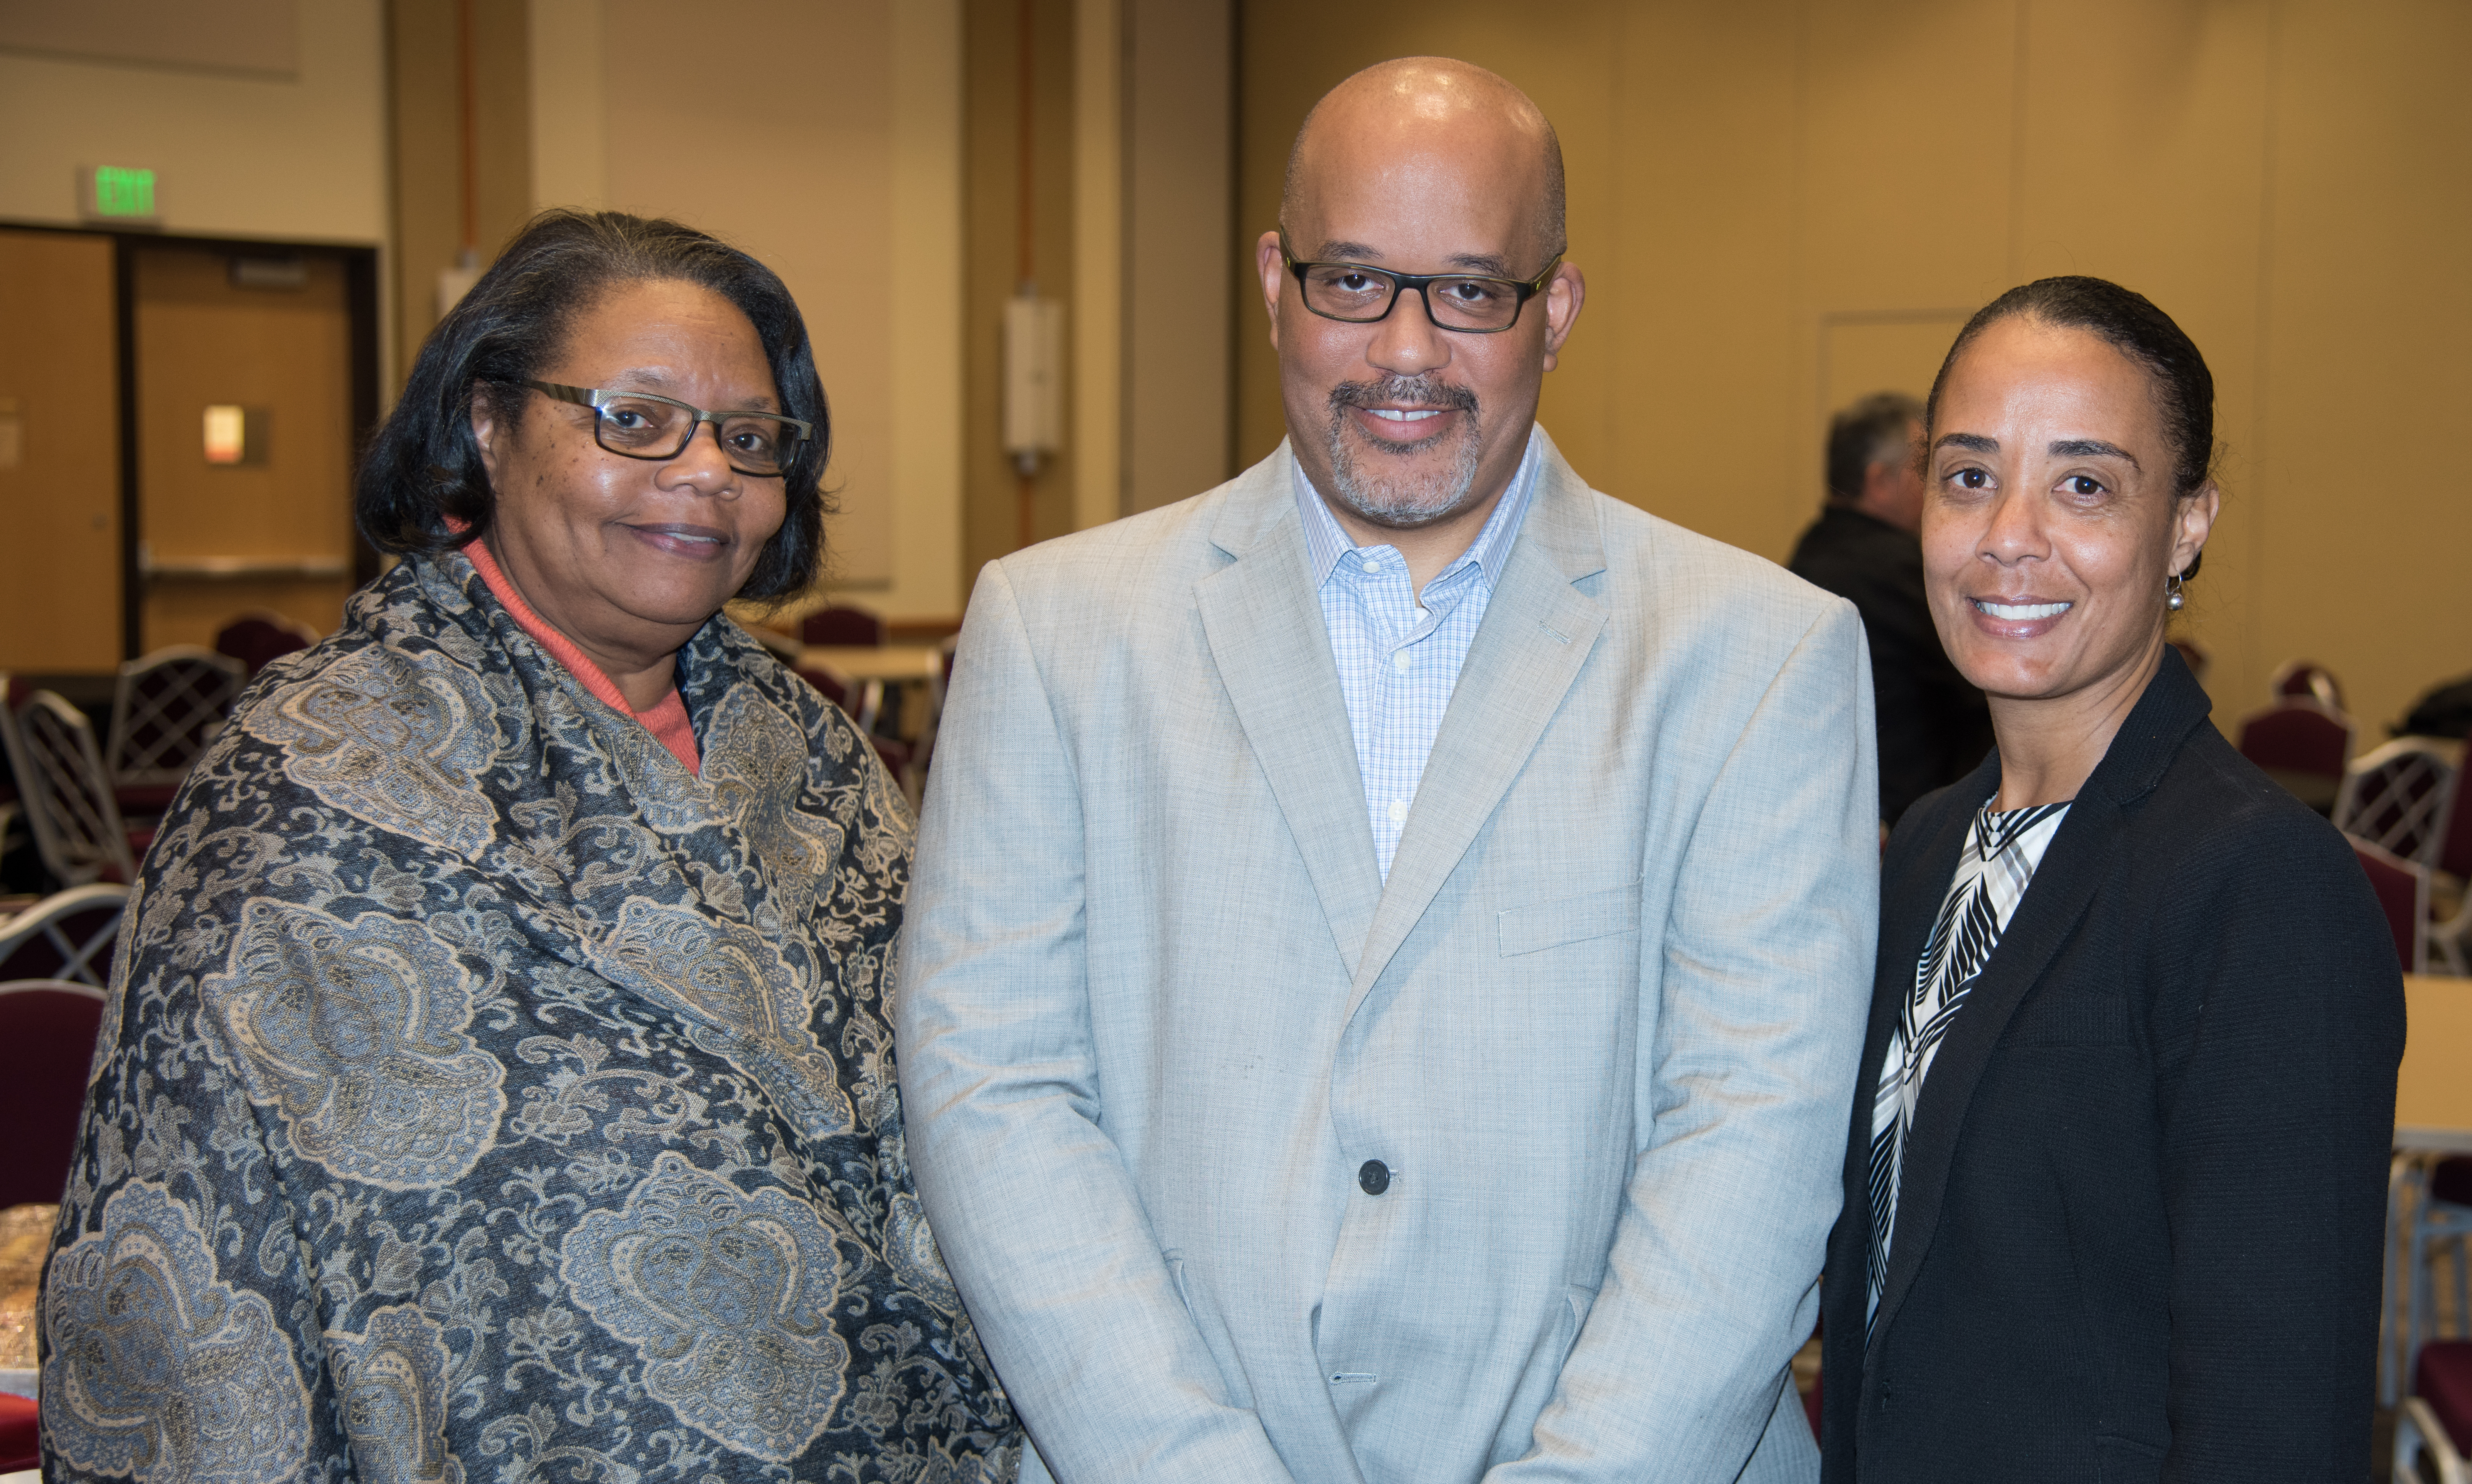 (L-R) Vanessa Fahie, PhD, RN, Russell McClain, JD, and Elsie Stines, DNP, are members of the UMB Diversity Advisory Council